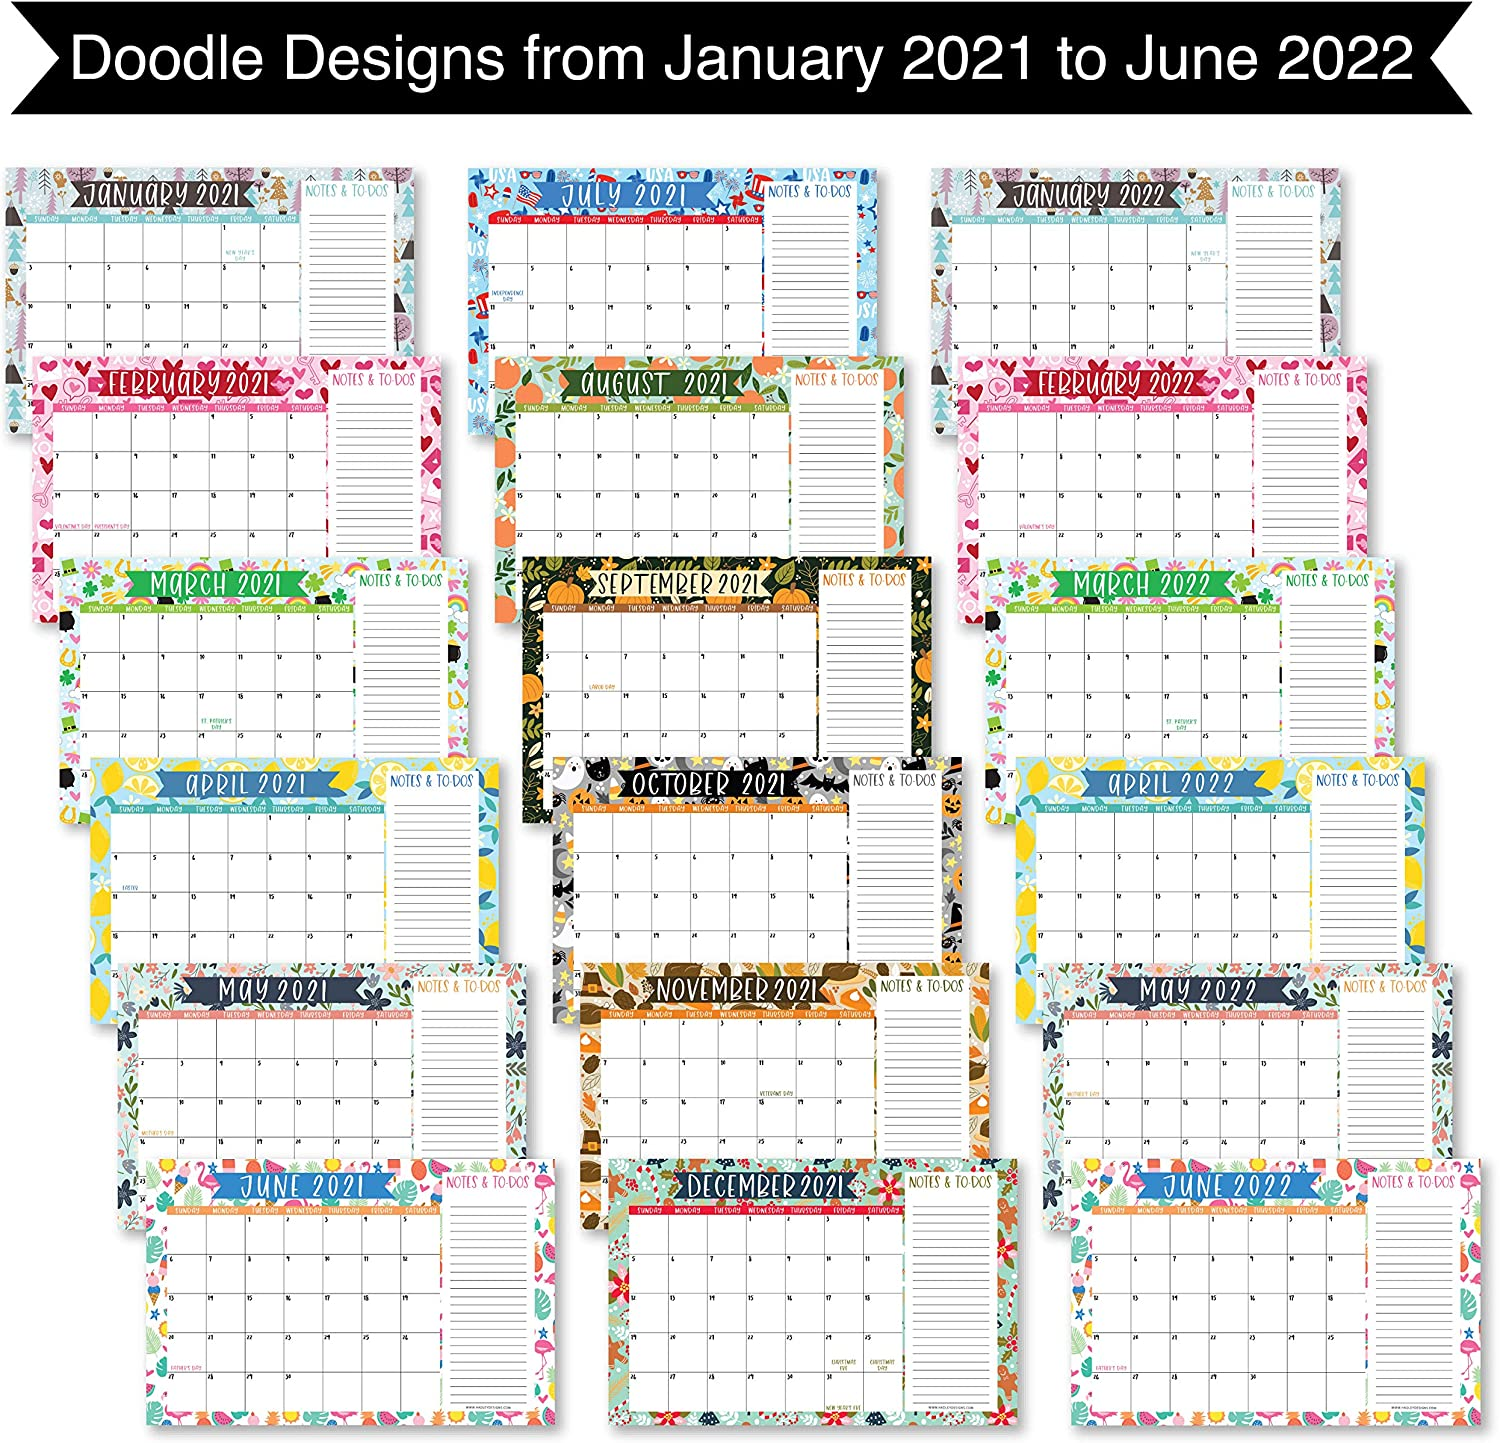 Notre Dame Academic Calendar 2022.Office Supplies Large Monthly Wall Planner With Seasons Family Business Office 11x17 18 Month Academic Desktop Calendar Fridge Planning Blotter Pad 2021 2022 Doodle Desk Calendar Seasonal Notes Section Teacher Office Products